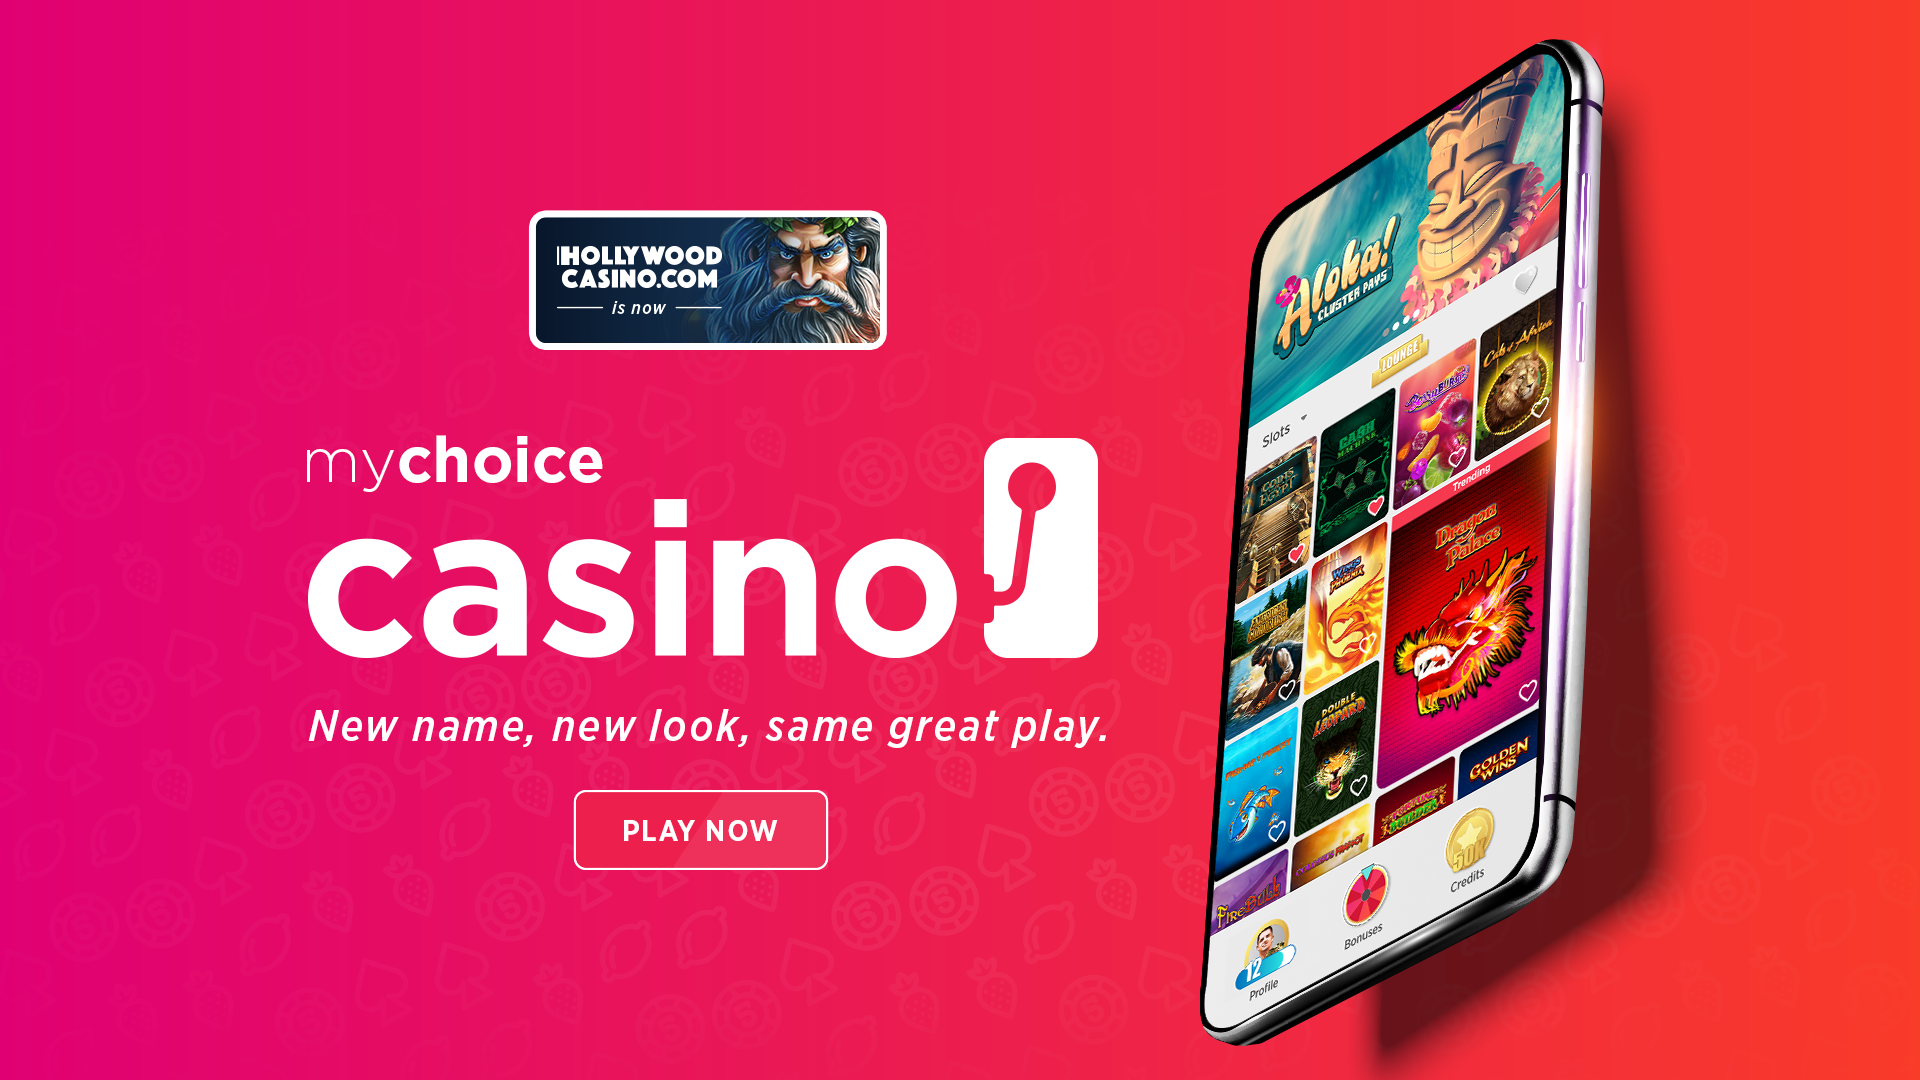 Hollywood Casino Online Slot Games